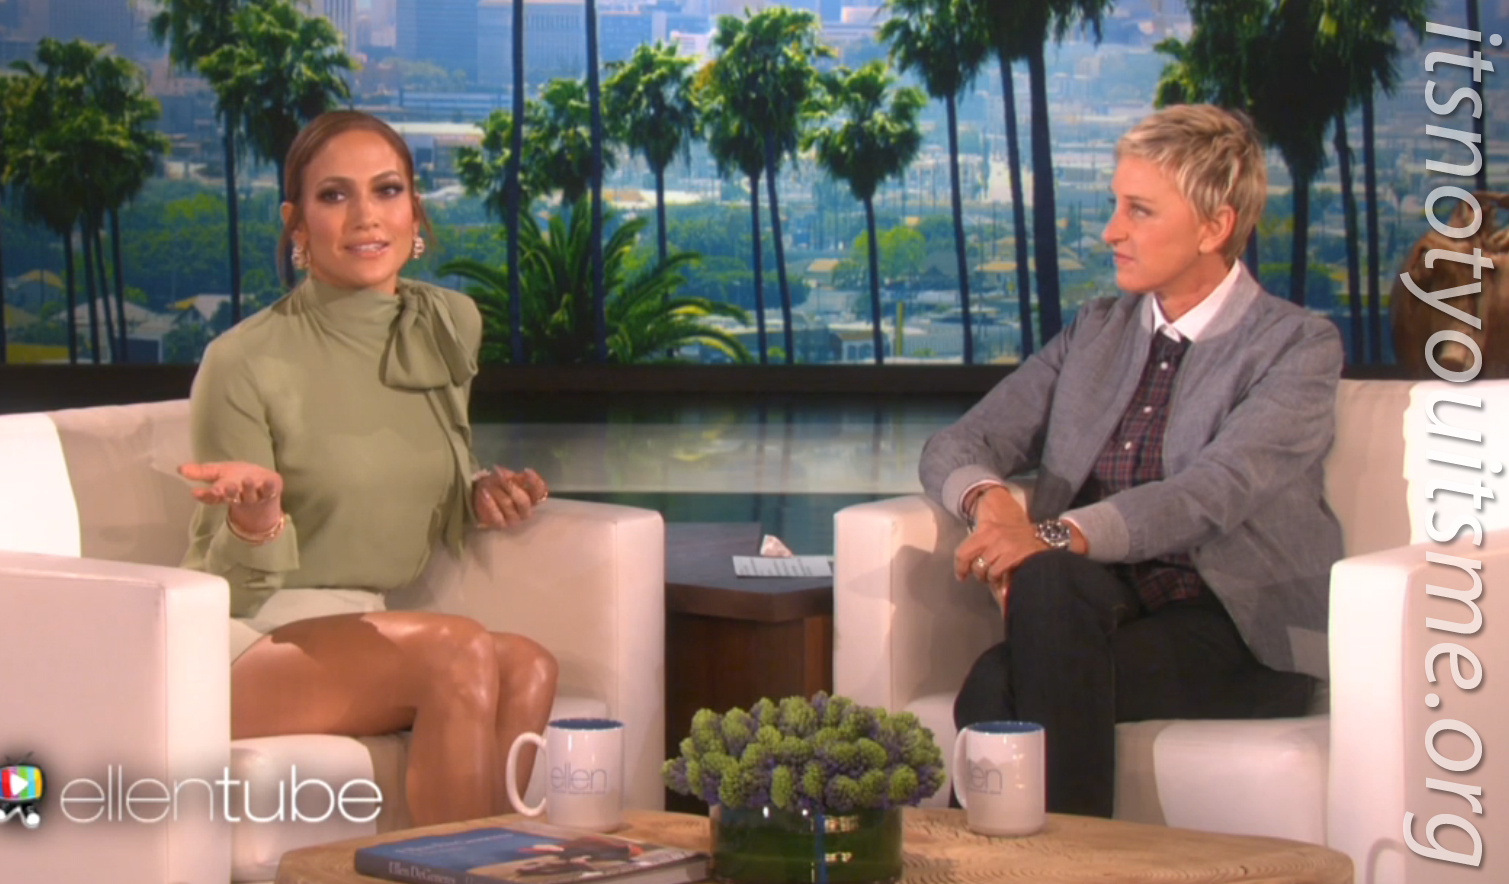 ItsNotYouItsMe Blog: JLo Talks, Beau family and Rabbits on Ellen